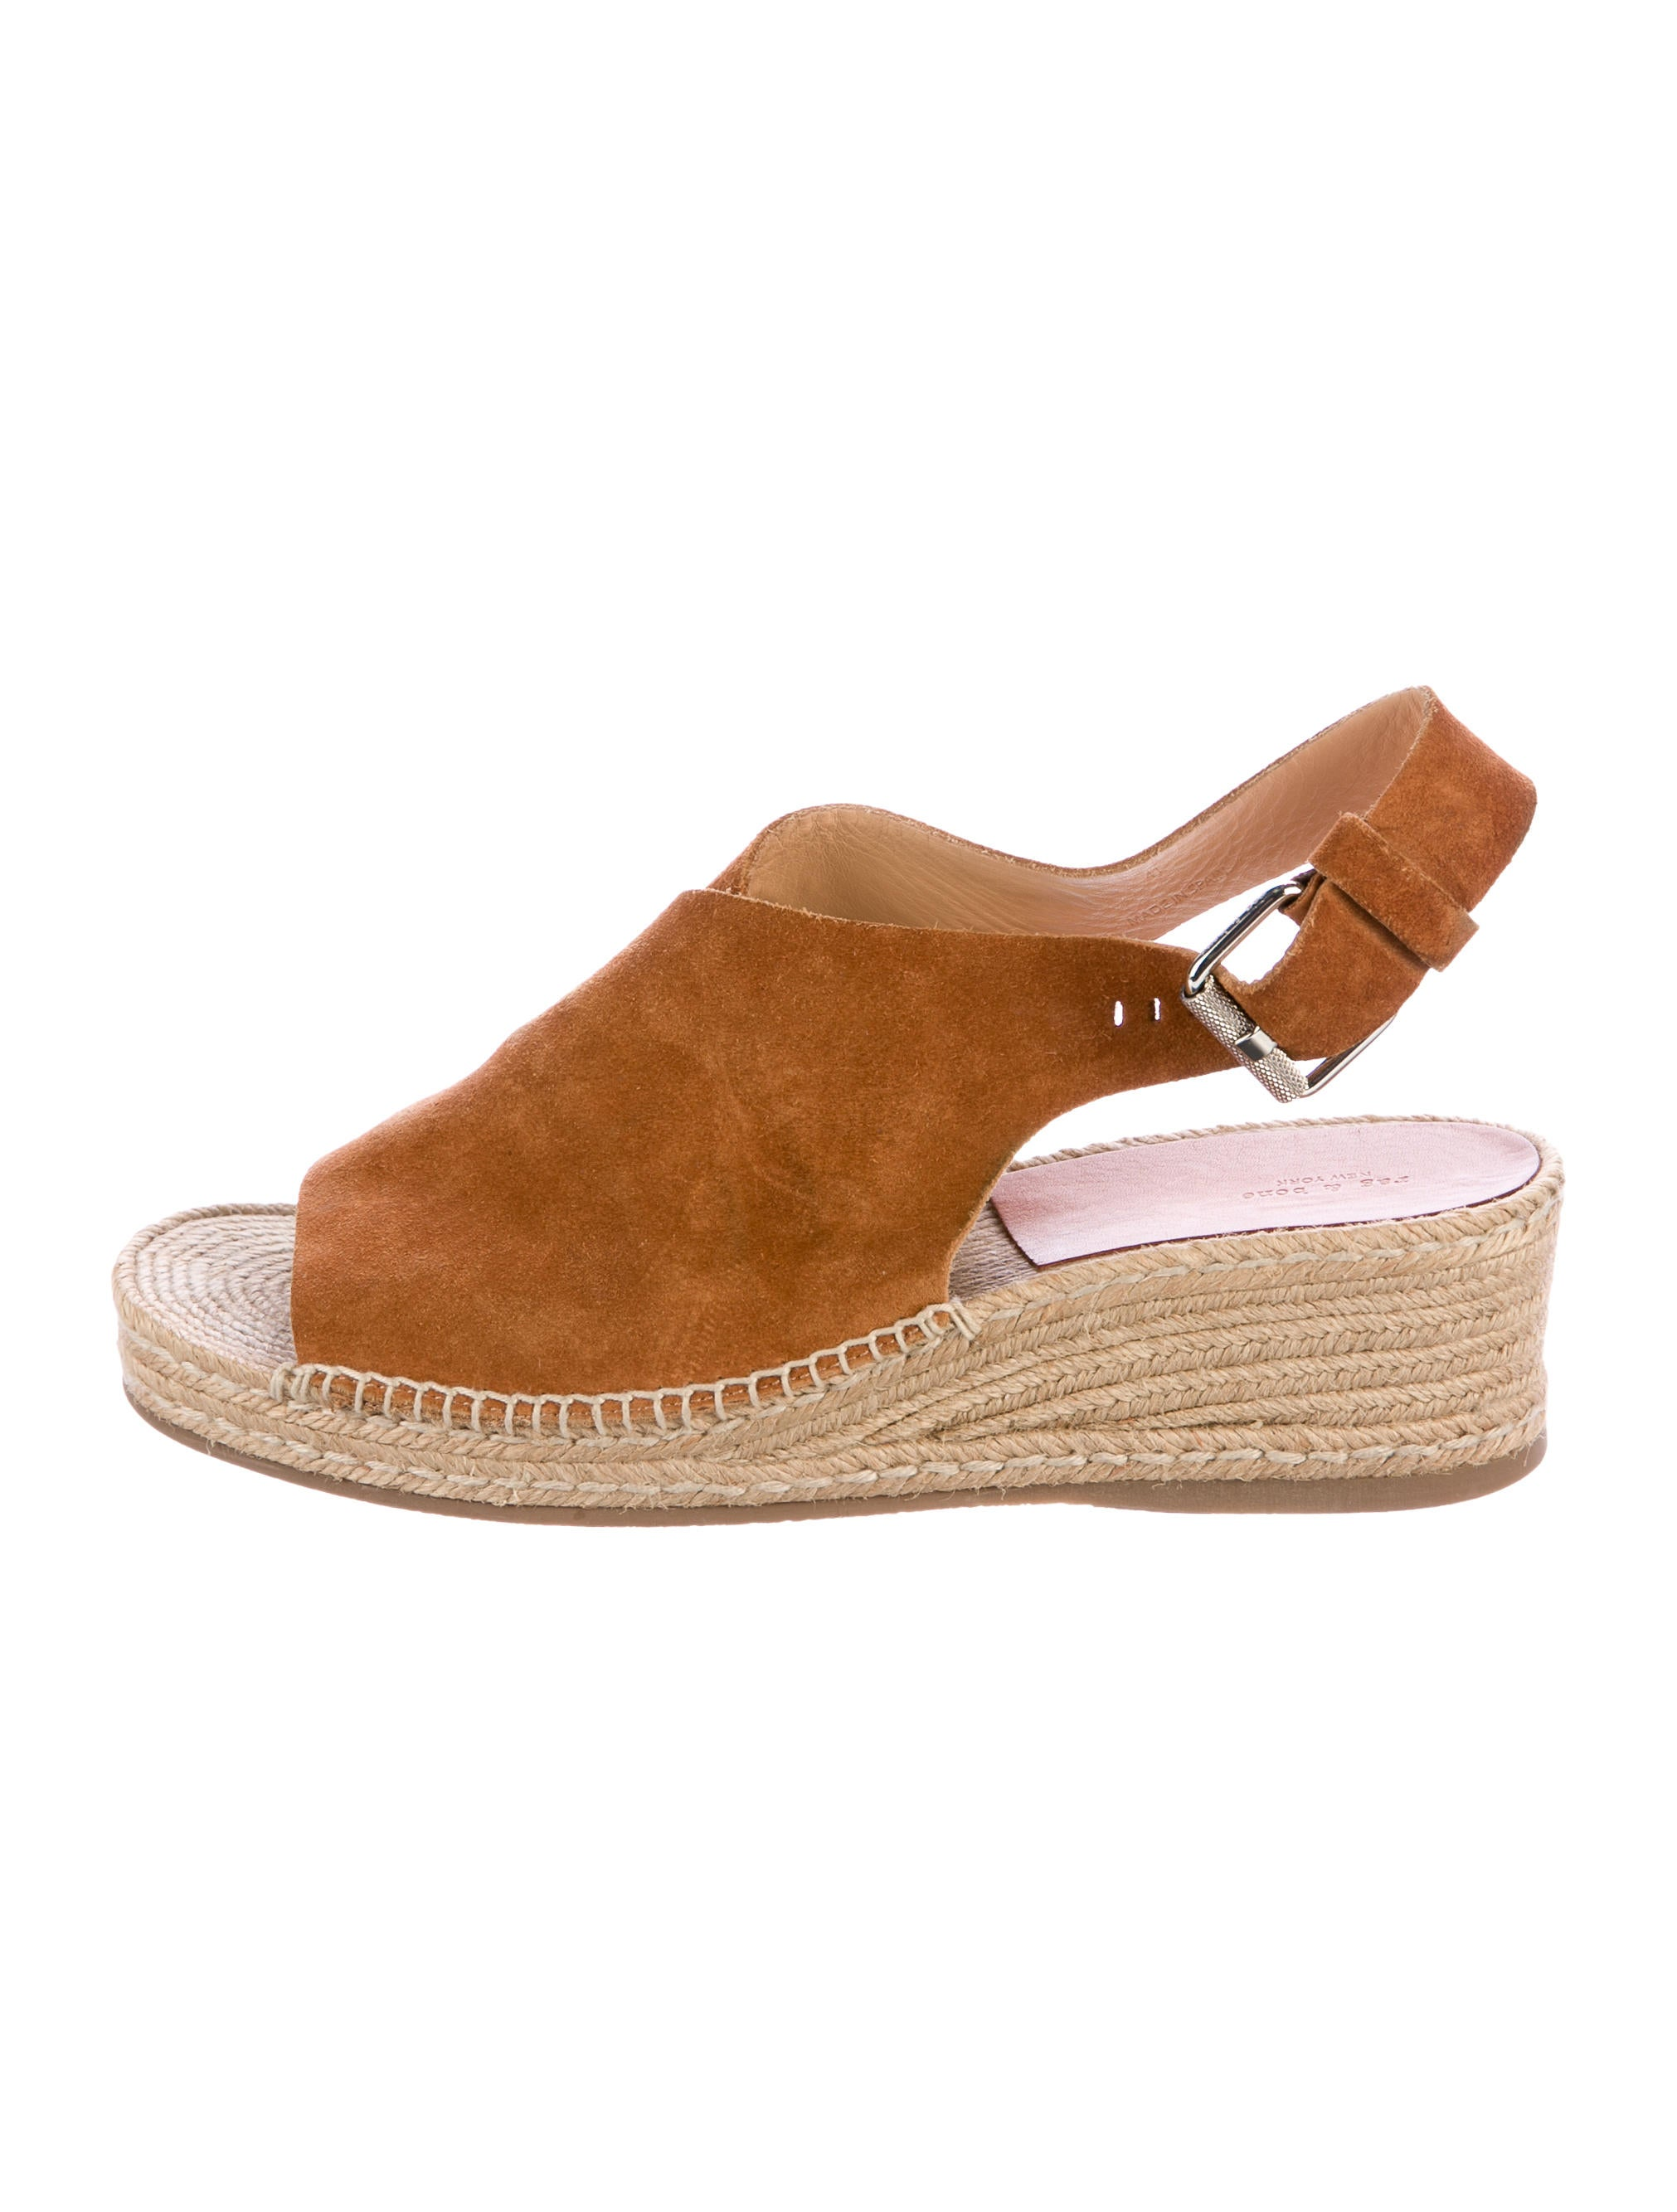 Rag & Bone Sienna Espadrille Wedge Sandals sale sast cheap sale for cheap discount buy free shipping authentic new styles for sale ZQuSgyZ2